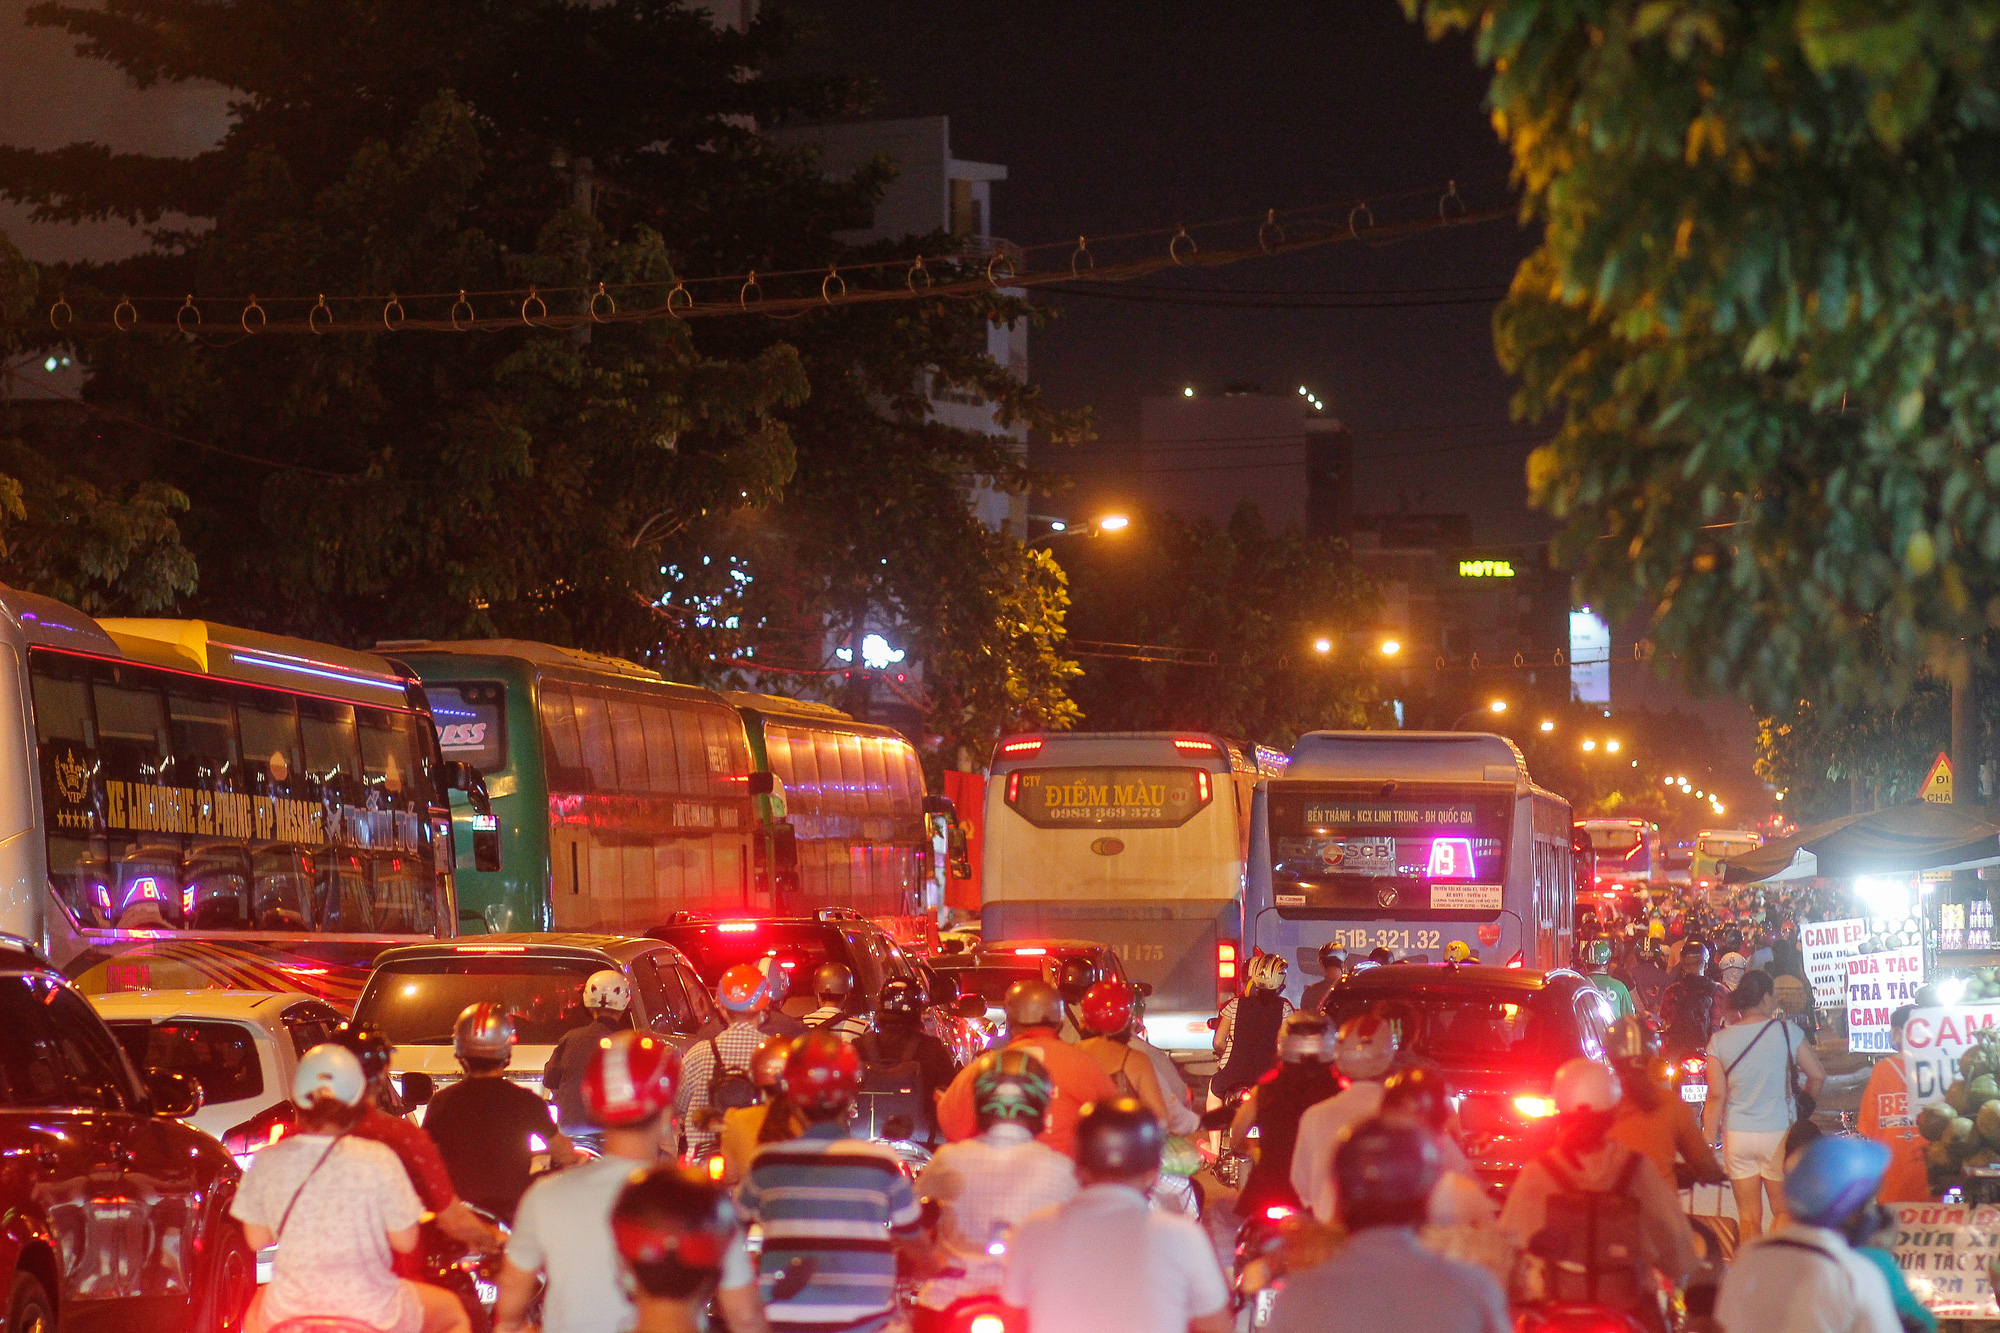 Traffic congestion on National Highway No.13 in Thu Duc City, Ho Chi Minh City, April 29, 2021. Photo: Chau Tuan / Tuoi Tre